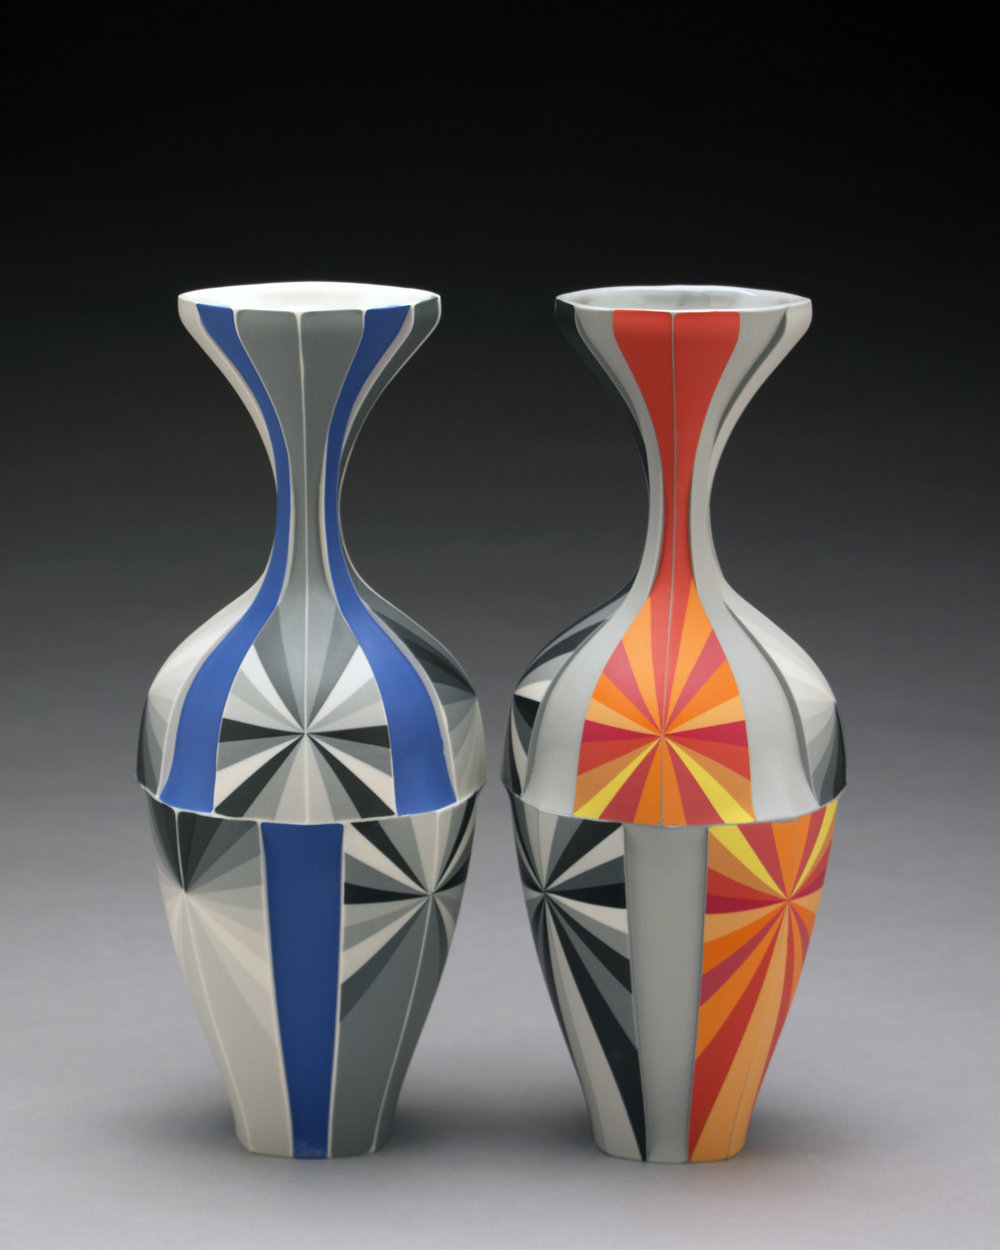 Peter Pincus,  Delphinium Vase  and  Orange Vase , 2018, colored porcelain, 13 x 5.5 x 5.5 inches, $3800. (each)